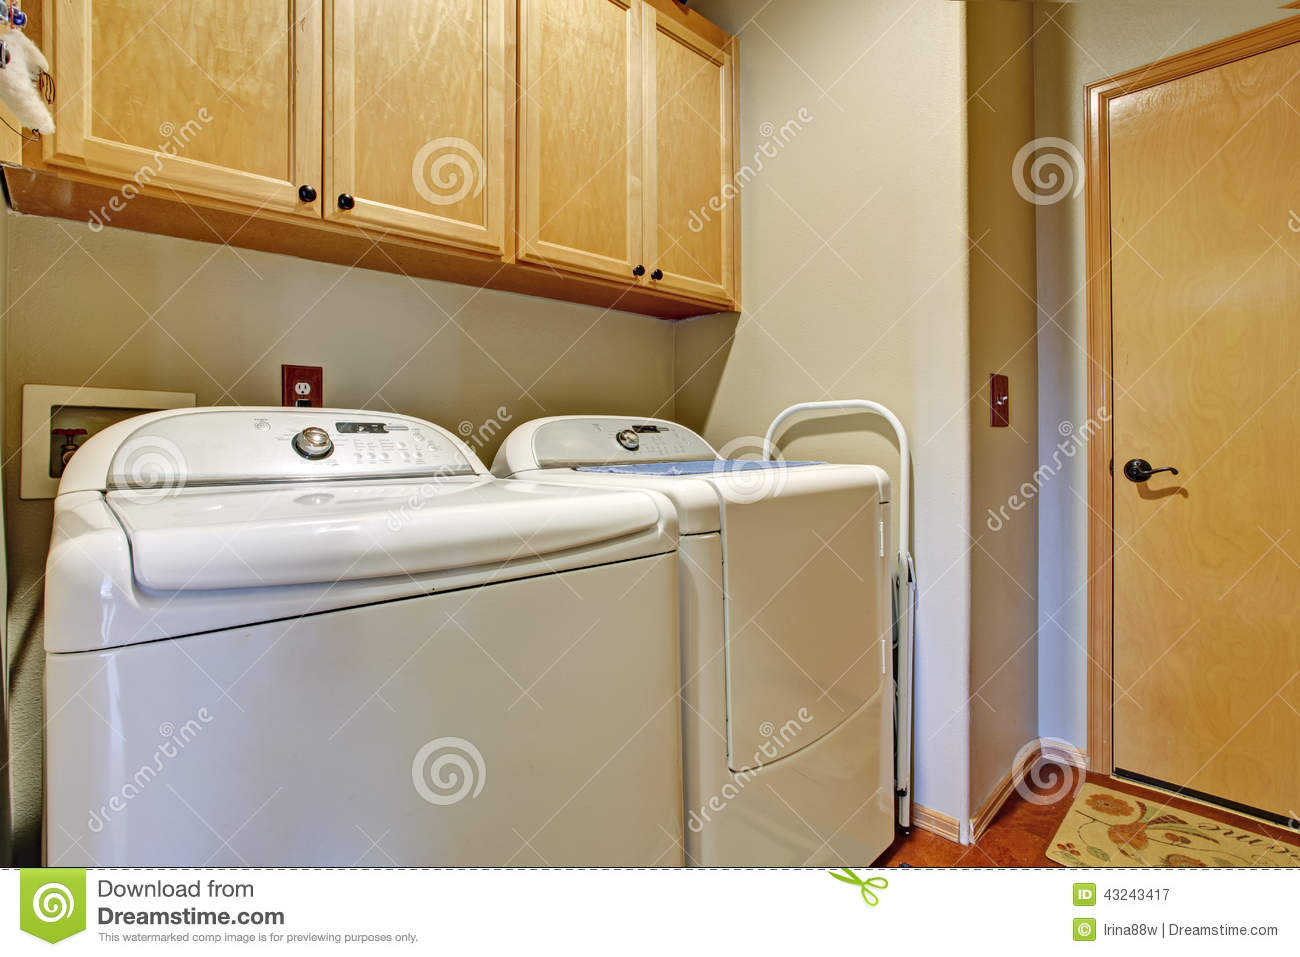 Simple bathroom interior with white appliances stock photo for Restroom appliances